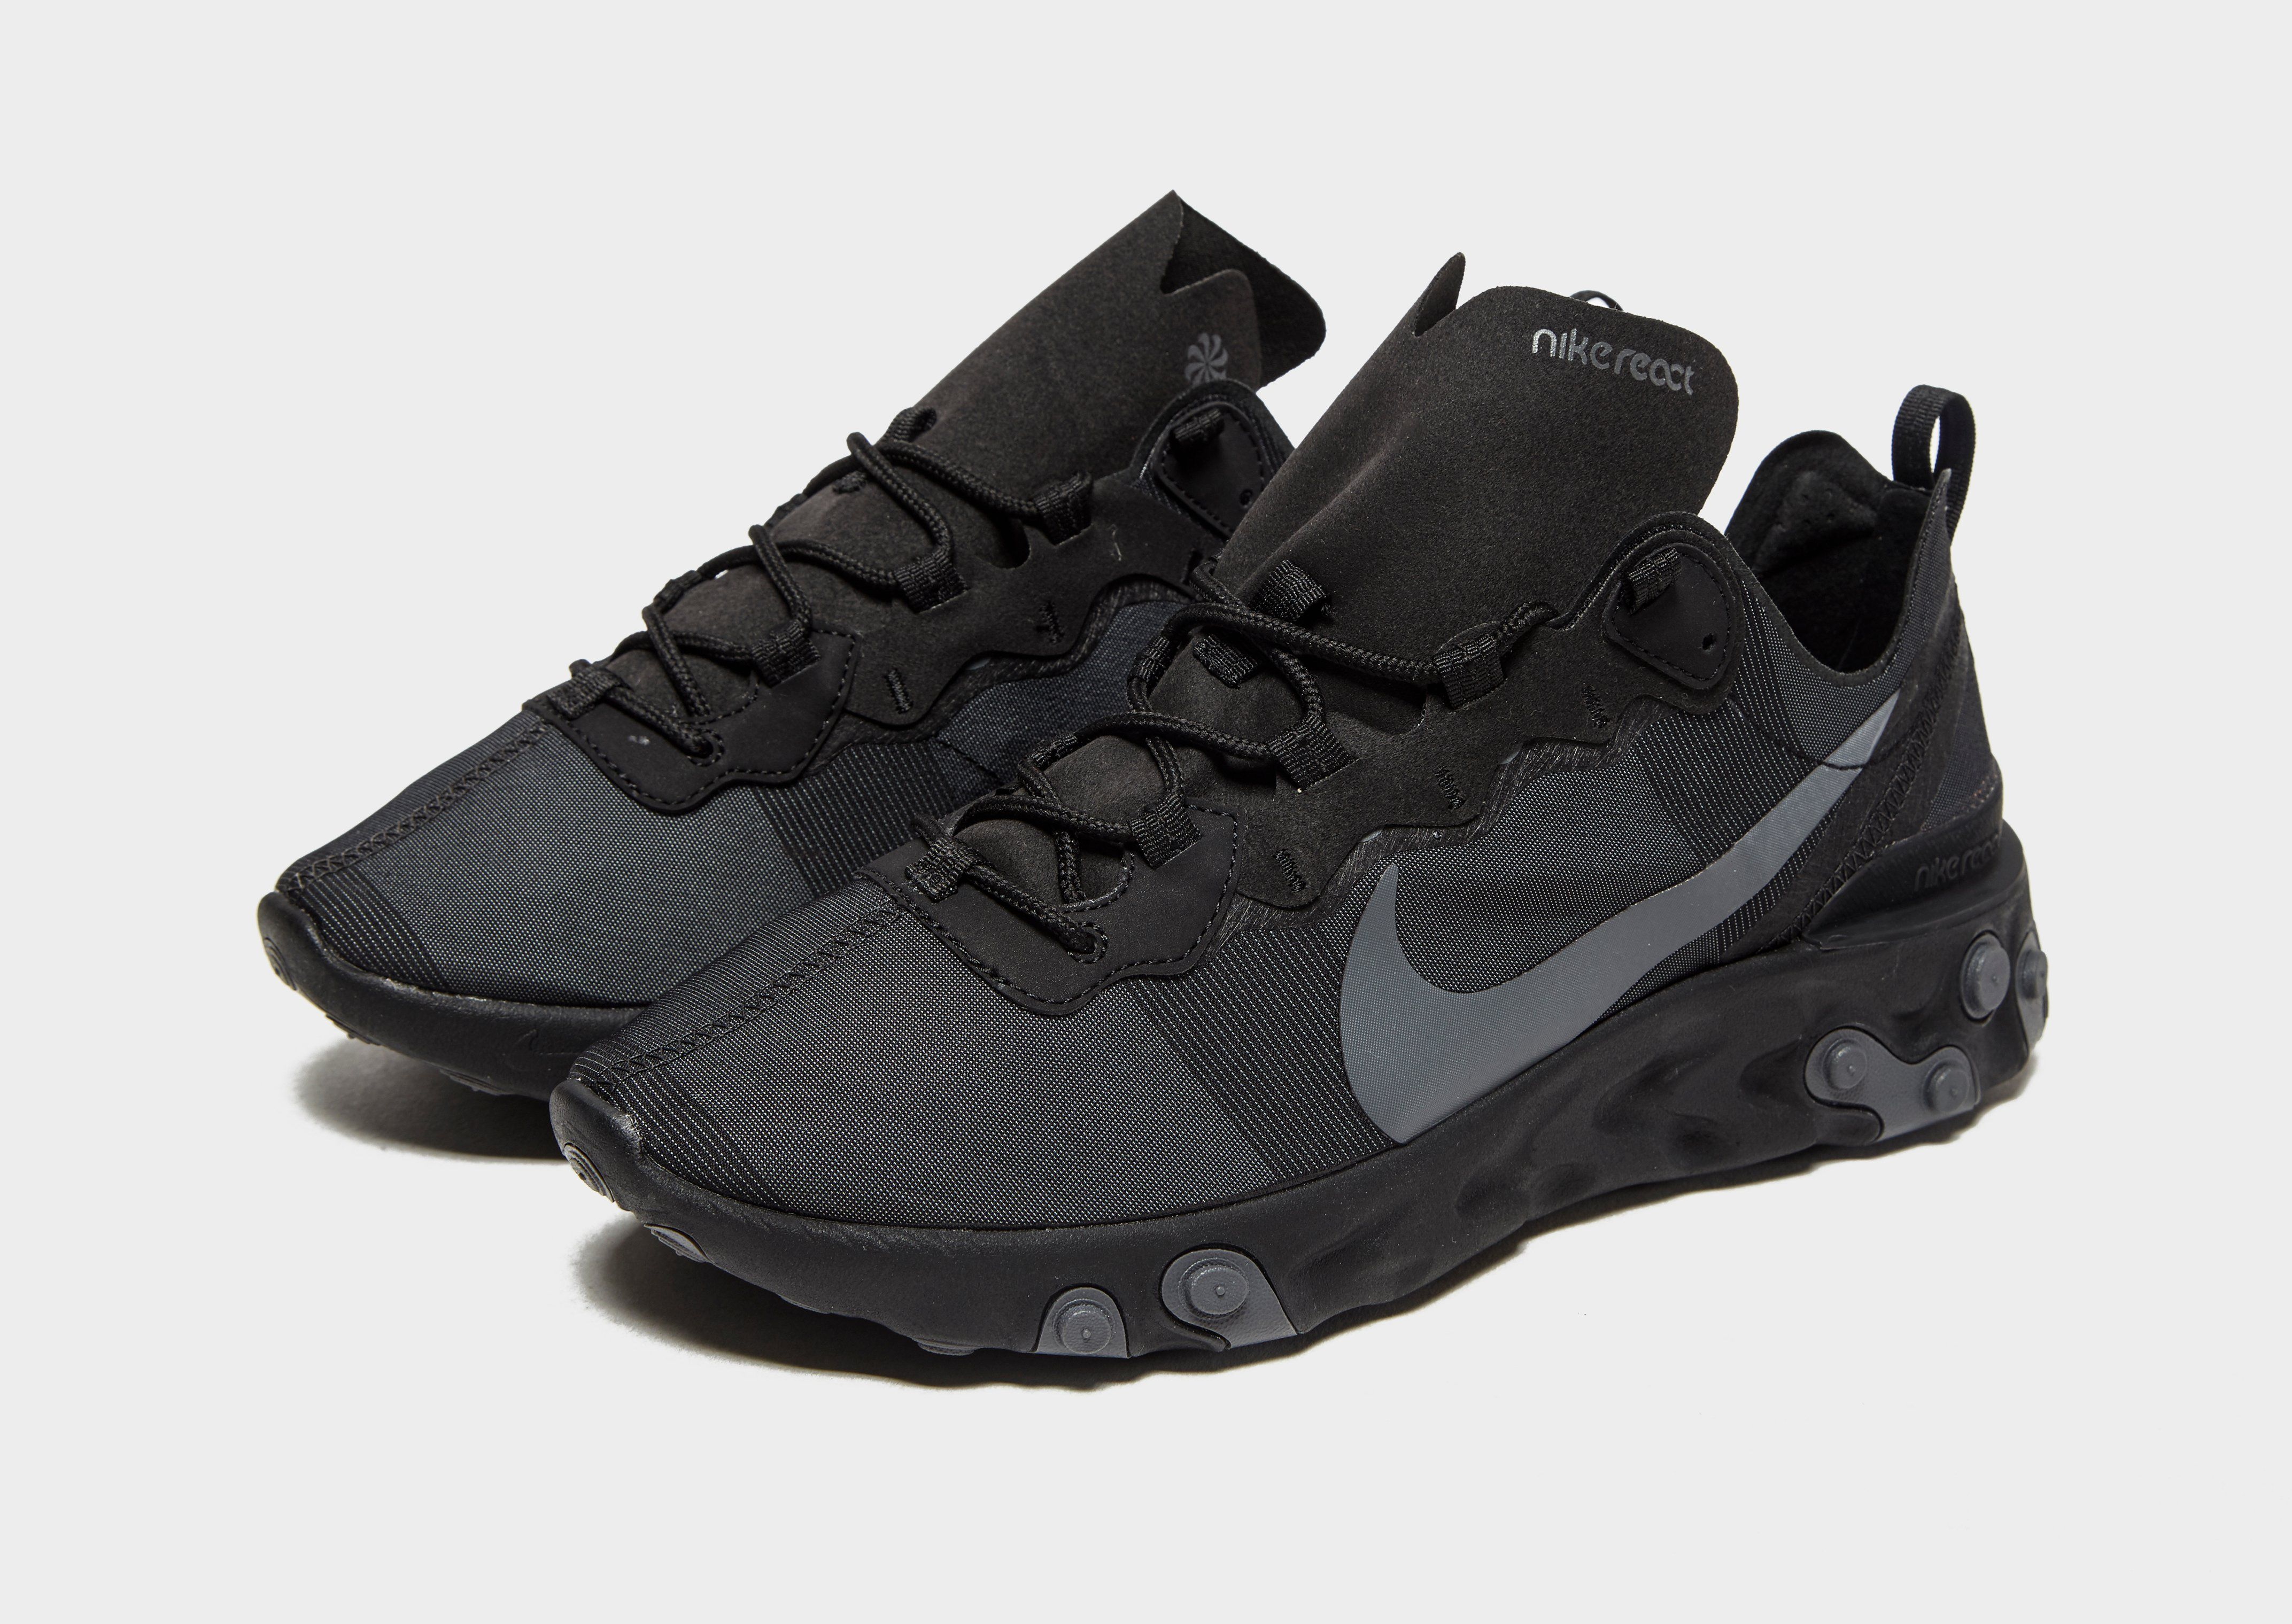 Nike React Element 55 Homme